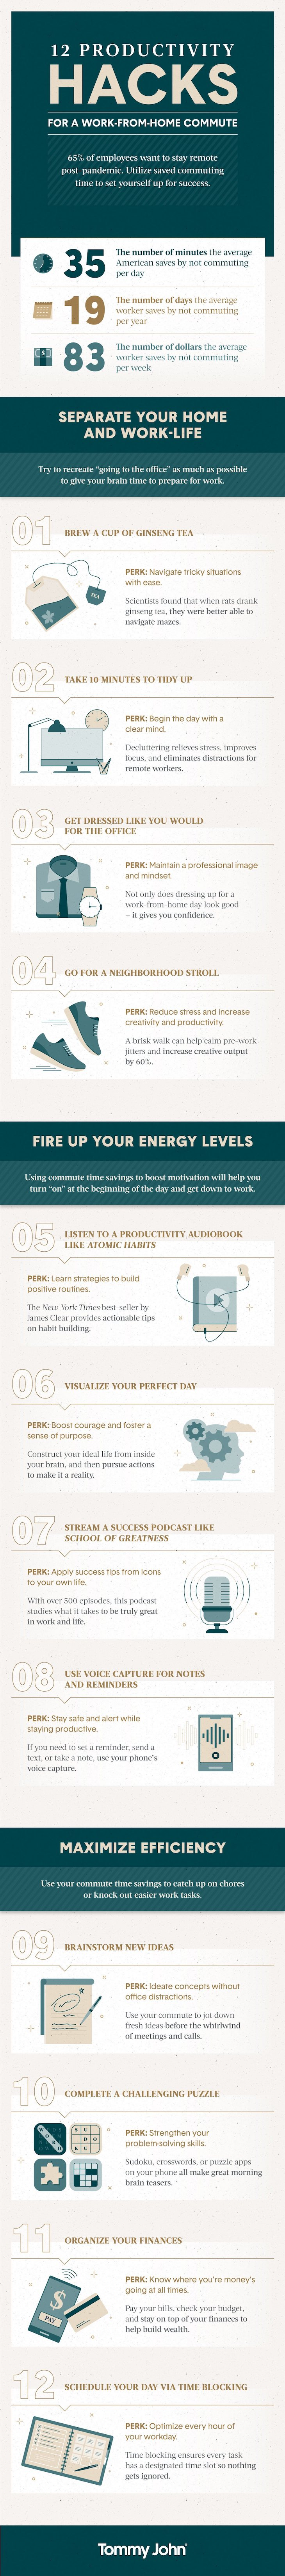 12 work from home productivity hacks infographic